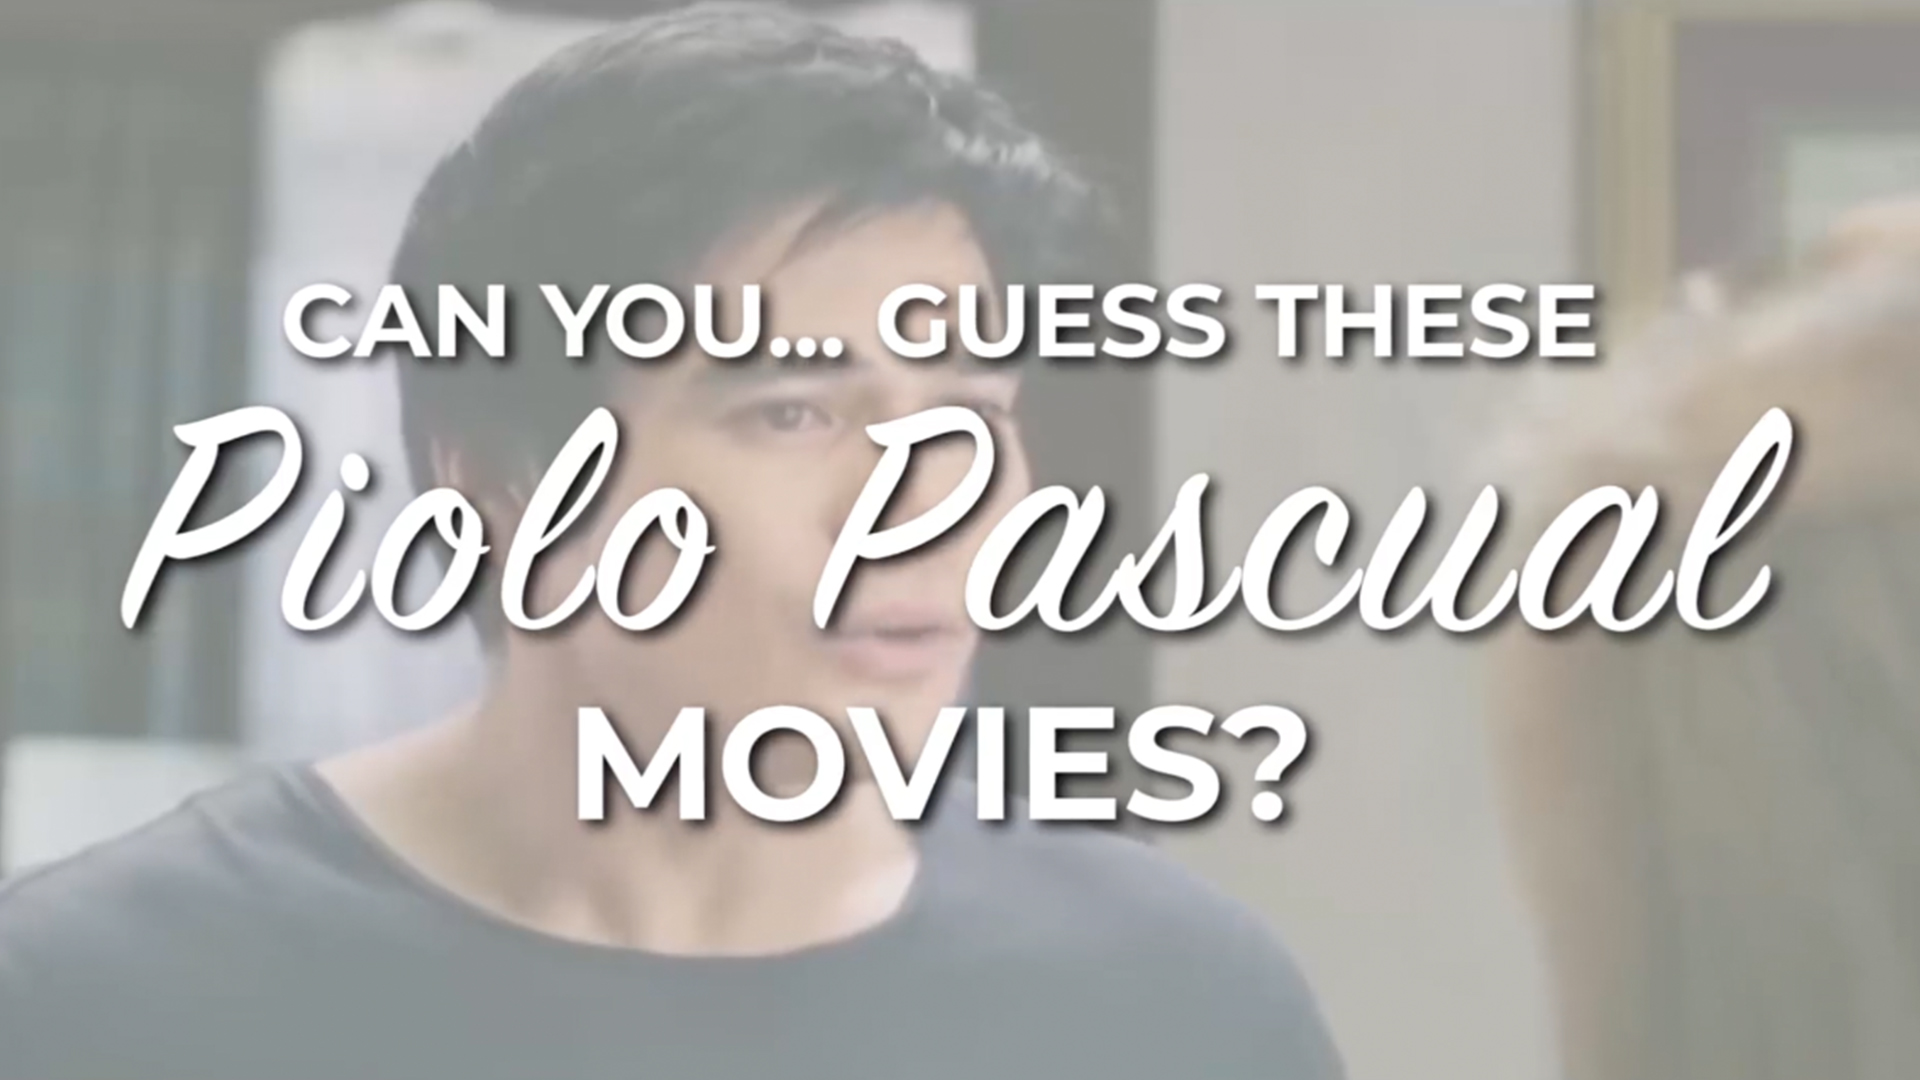 Can You... Guess These Piolo Pascual Movies?